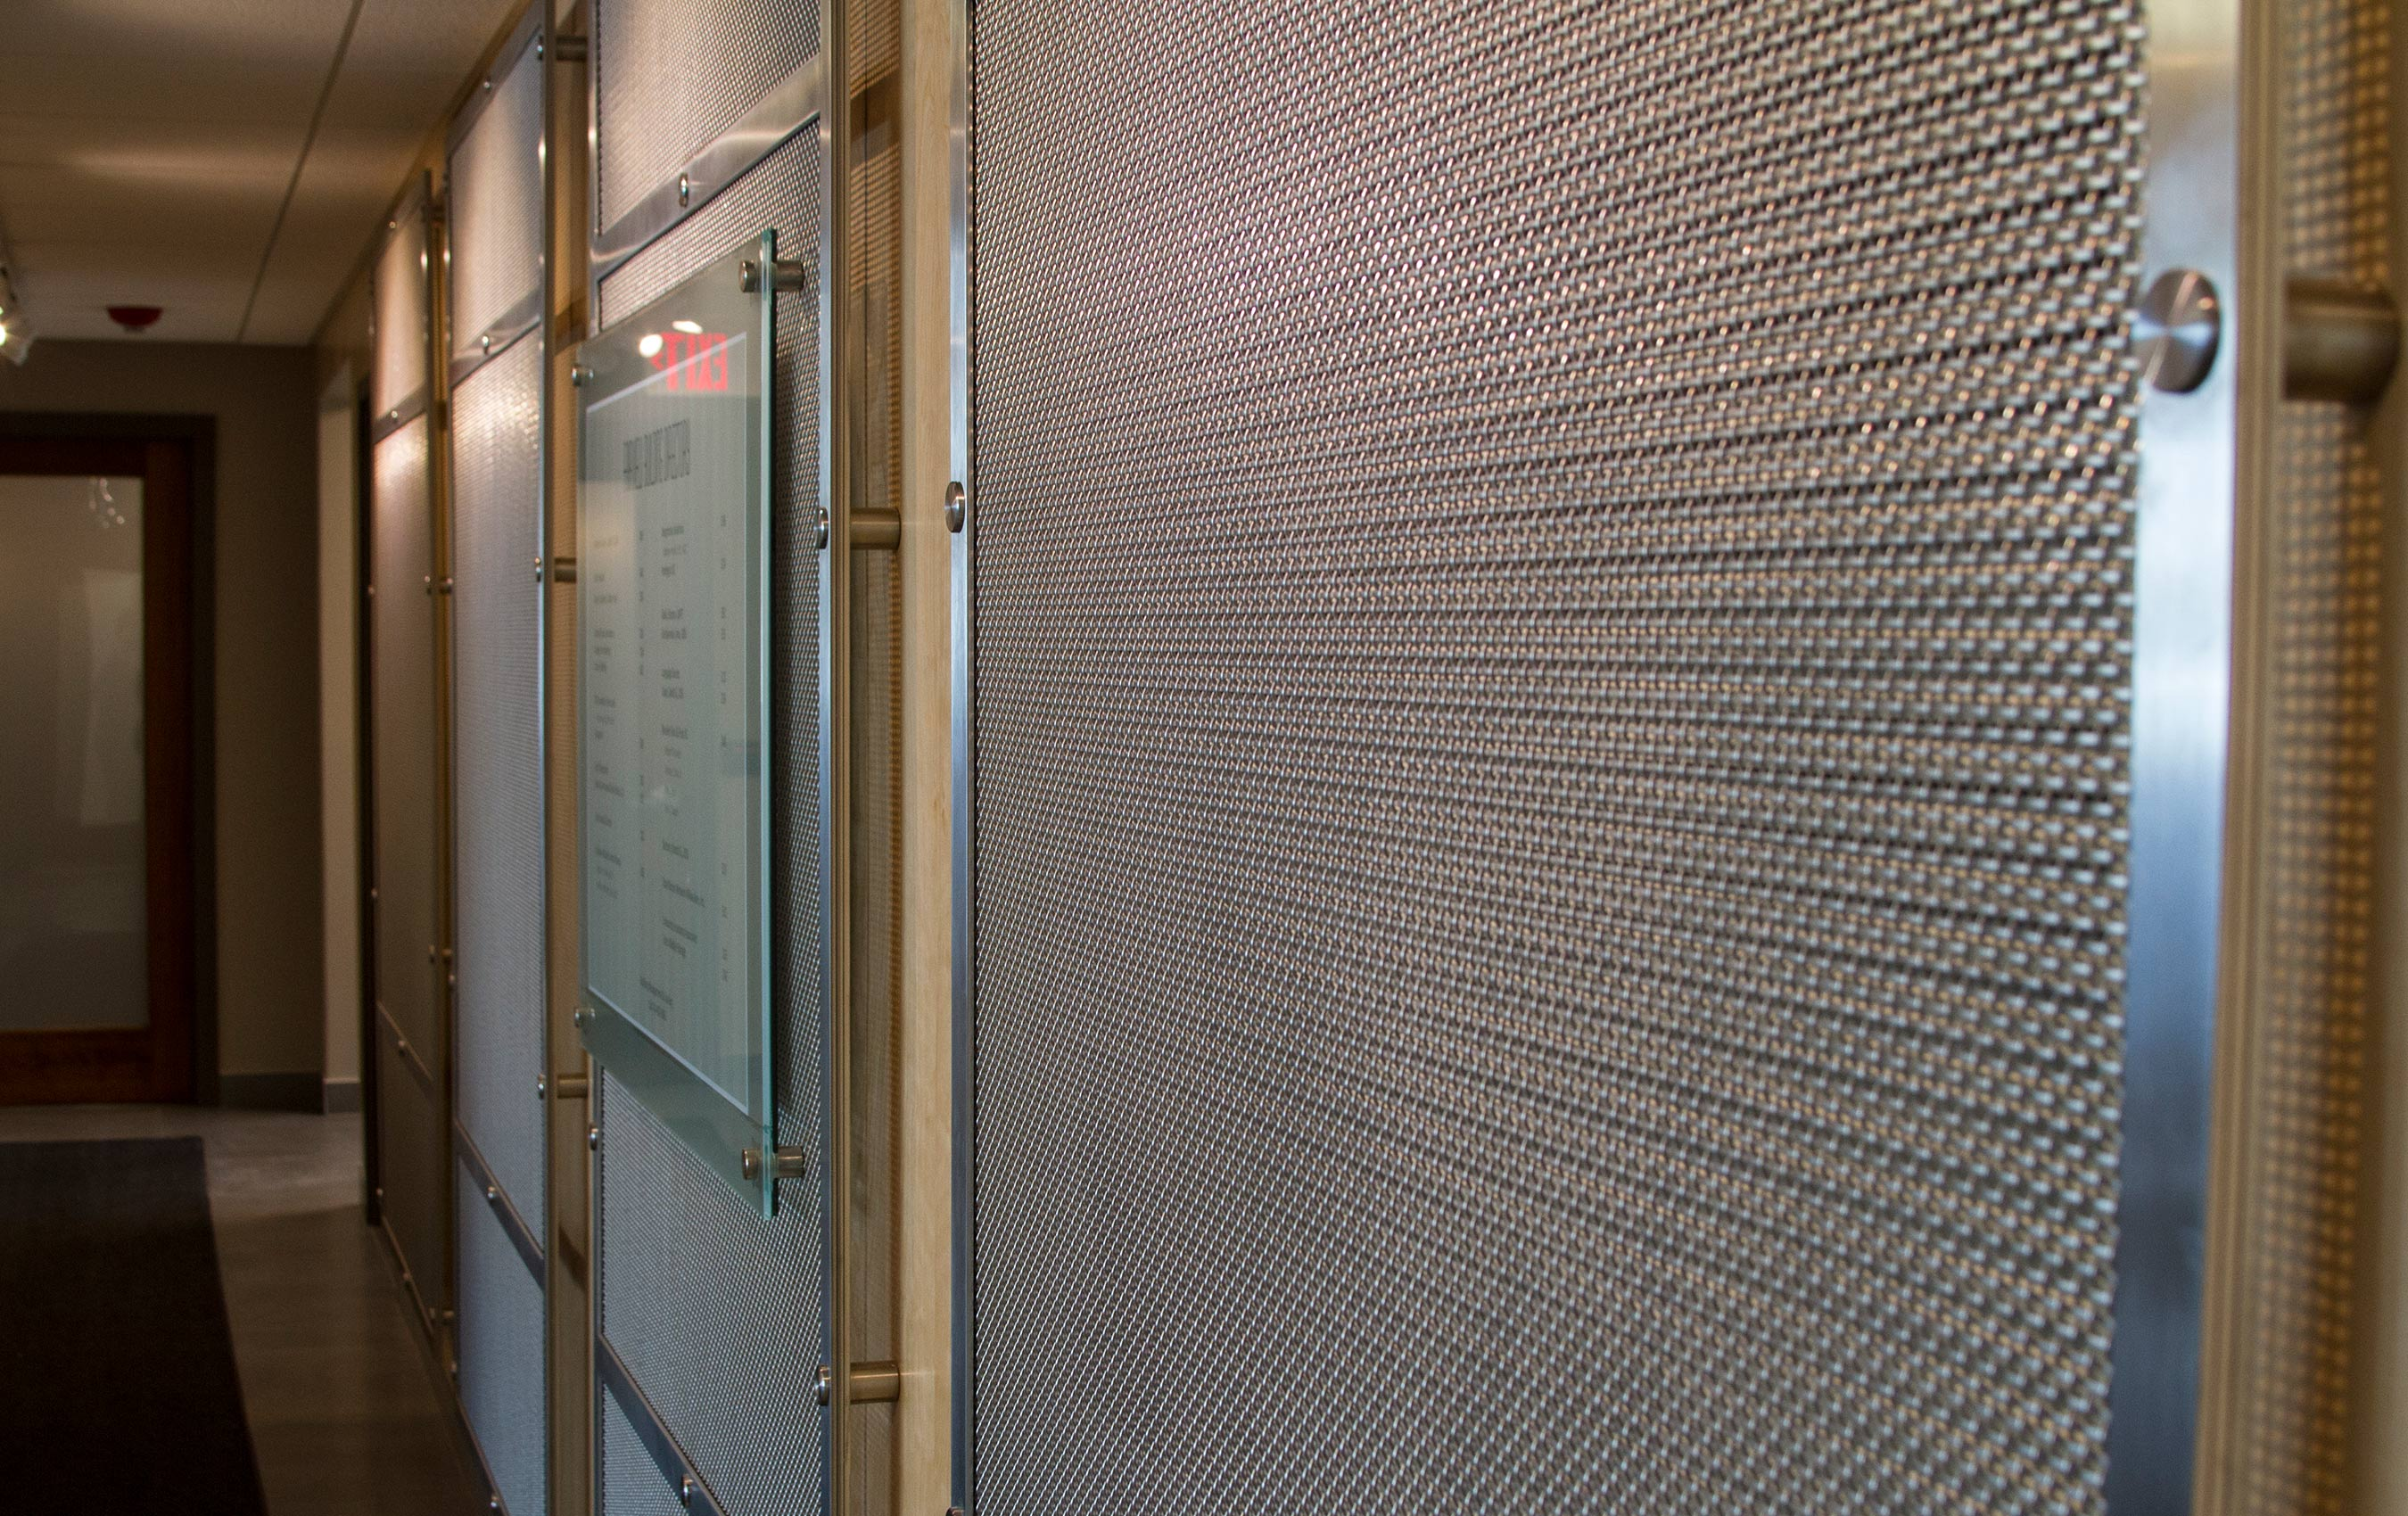 SZ-4 is a beautiful decorative mesh that makes a stunning visual impact in any application.